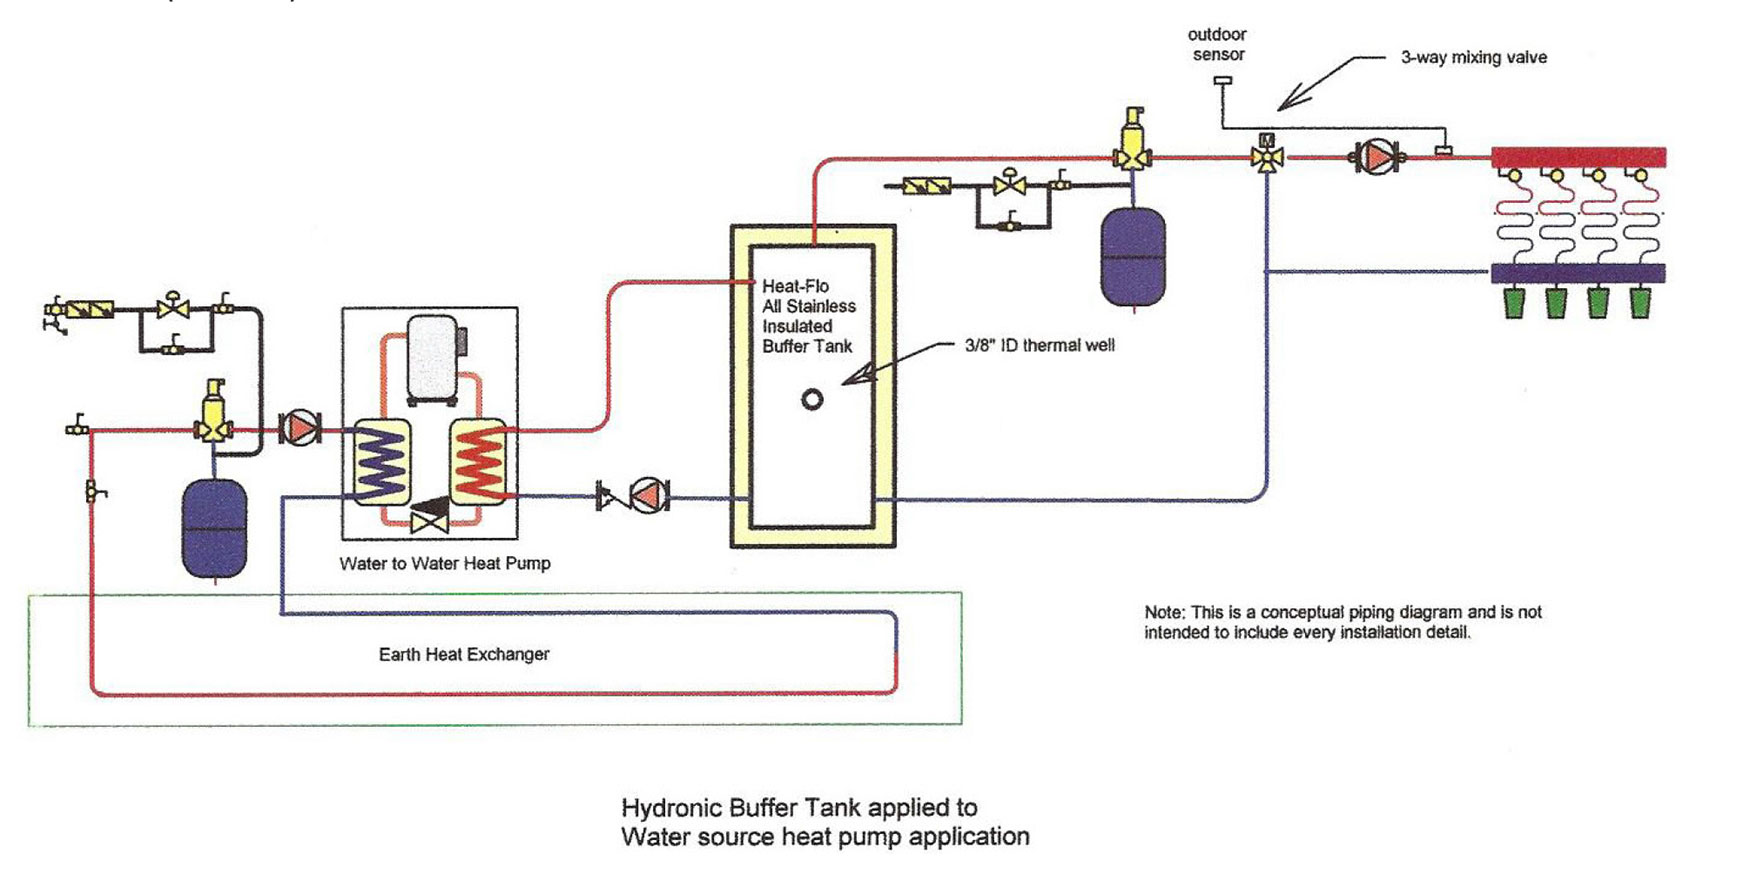 Heat-Flo HF-40-BT-112 Stainless Steel Hydronic Buffer Tank 40 ... on hot water mixing valve diagram, 4-way valve diagram, 5 way valve diagram, 3-way valve operation, how does a shower diverter work diagram, 3-way zone valve diagrams, swimming pool multiport valve diagram, ball valve diagram, 3-way y-valve, leonard mixing valve parts diagram, 3-way control valve detail, 3-way valve drawing, 3-way diverter valve, 3-way valve plastic, 3-way valve schematic, trane hot gas bypass diagram, 3-way diverting valve diagram, 3-way flow valve, three-way valve diagram, 3 way fuel valve diagram,